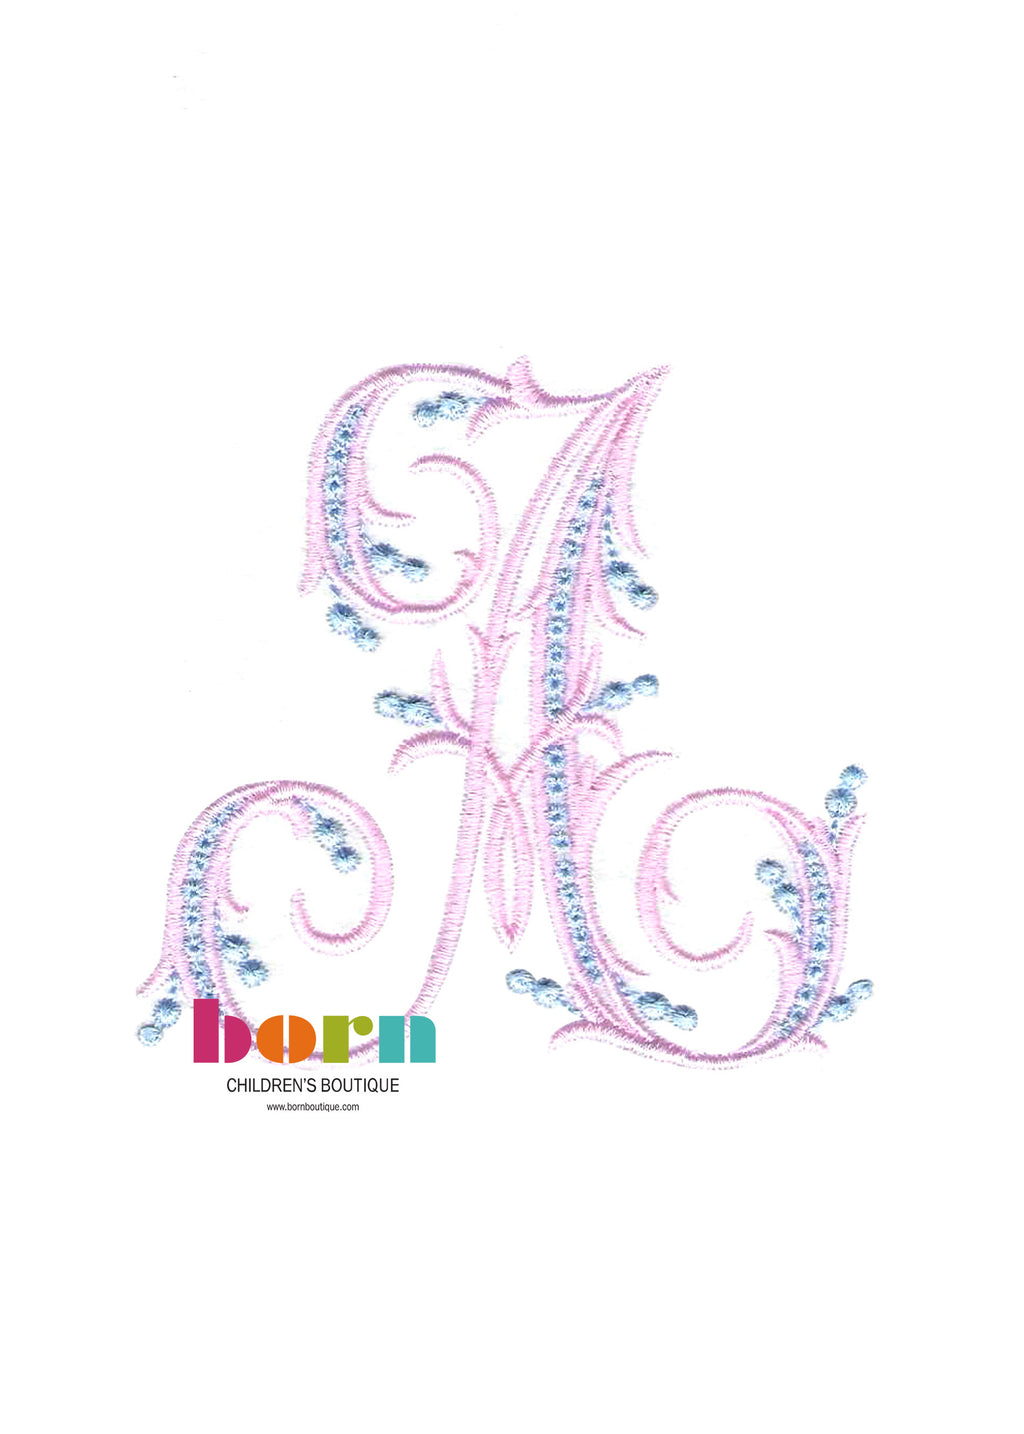 Arabesque 9 Initials - Born Childrens Boutique